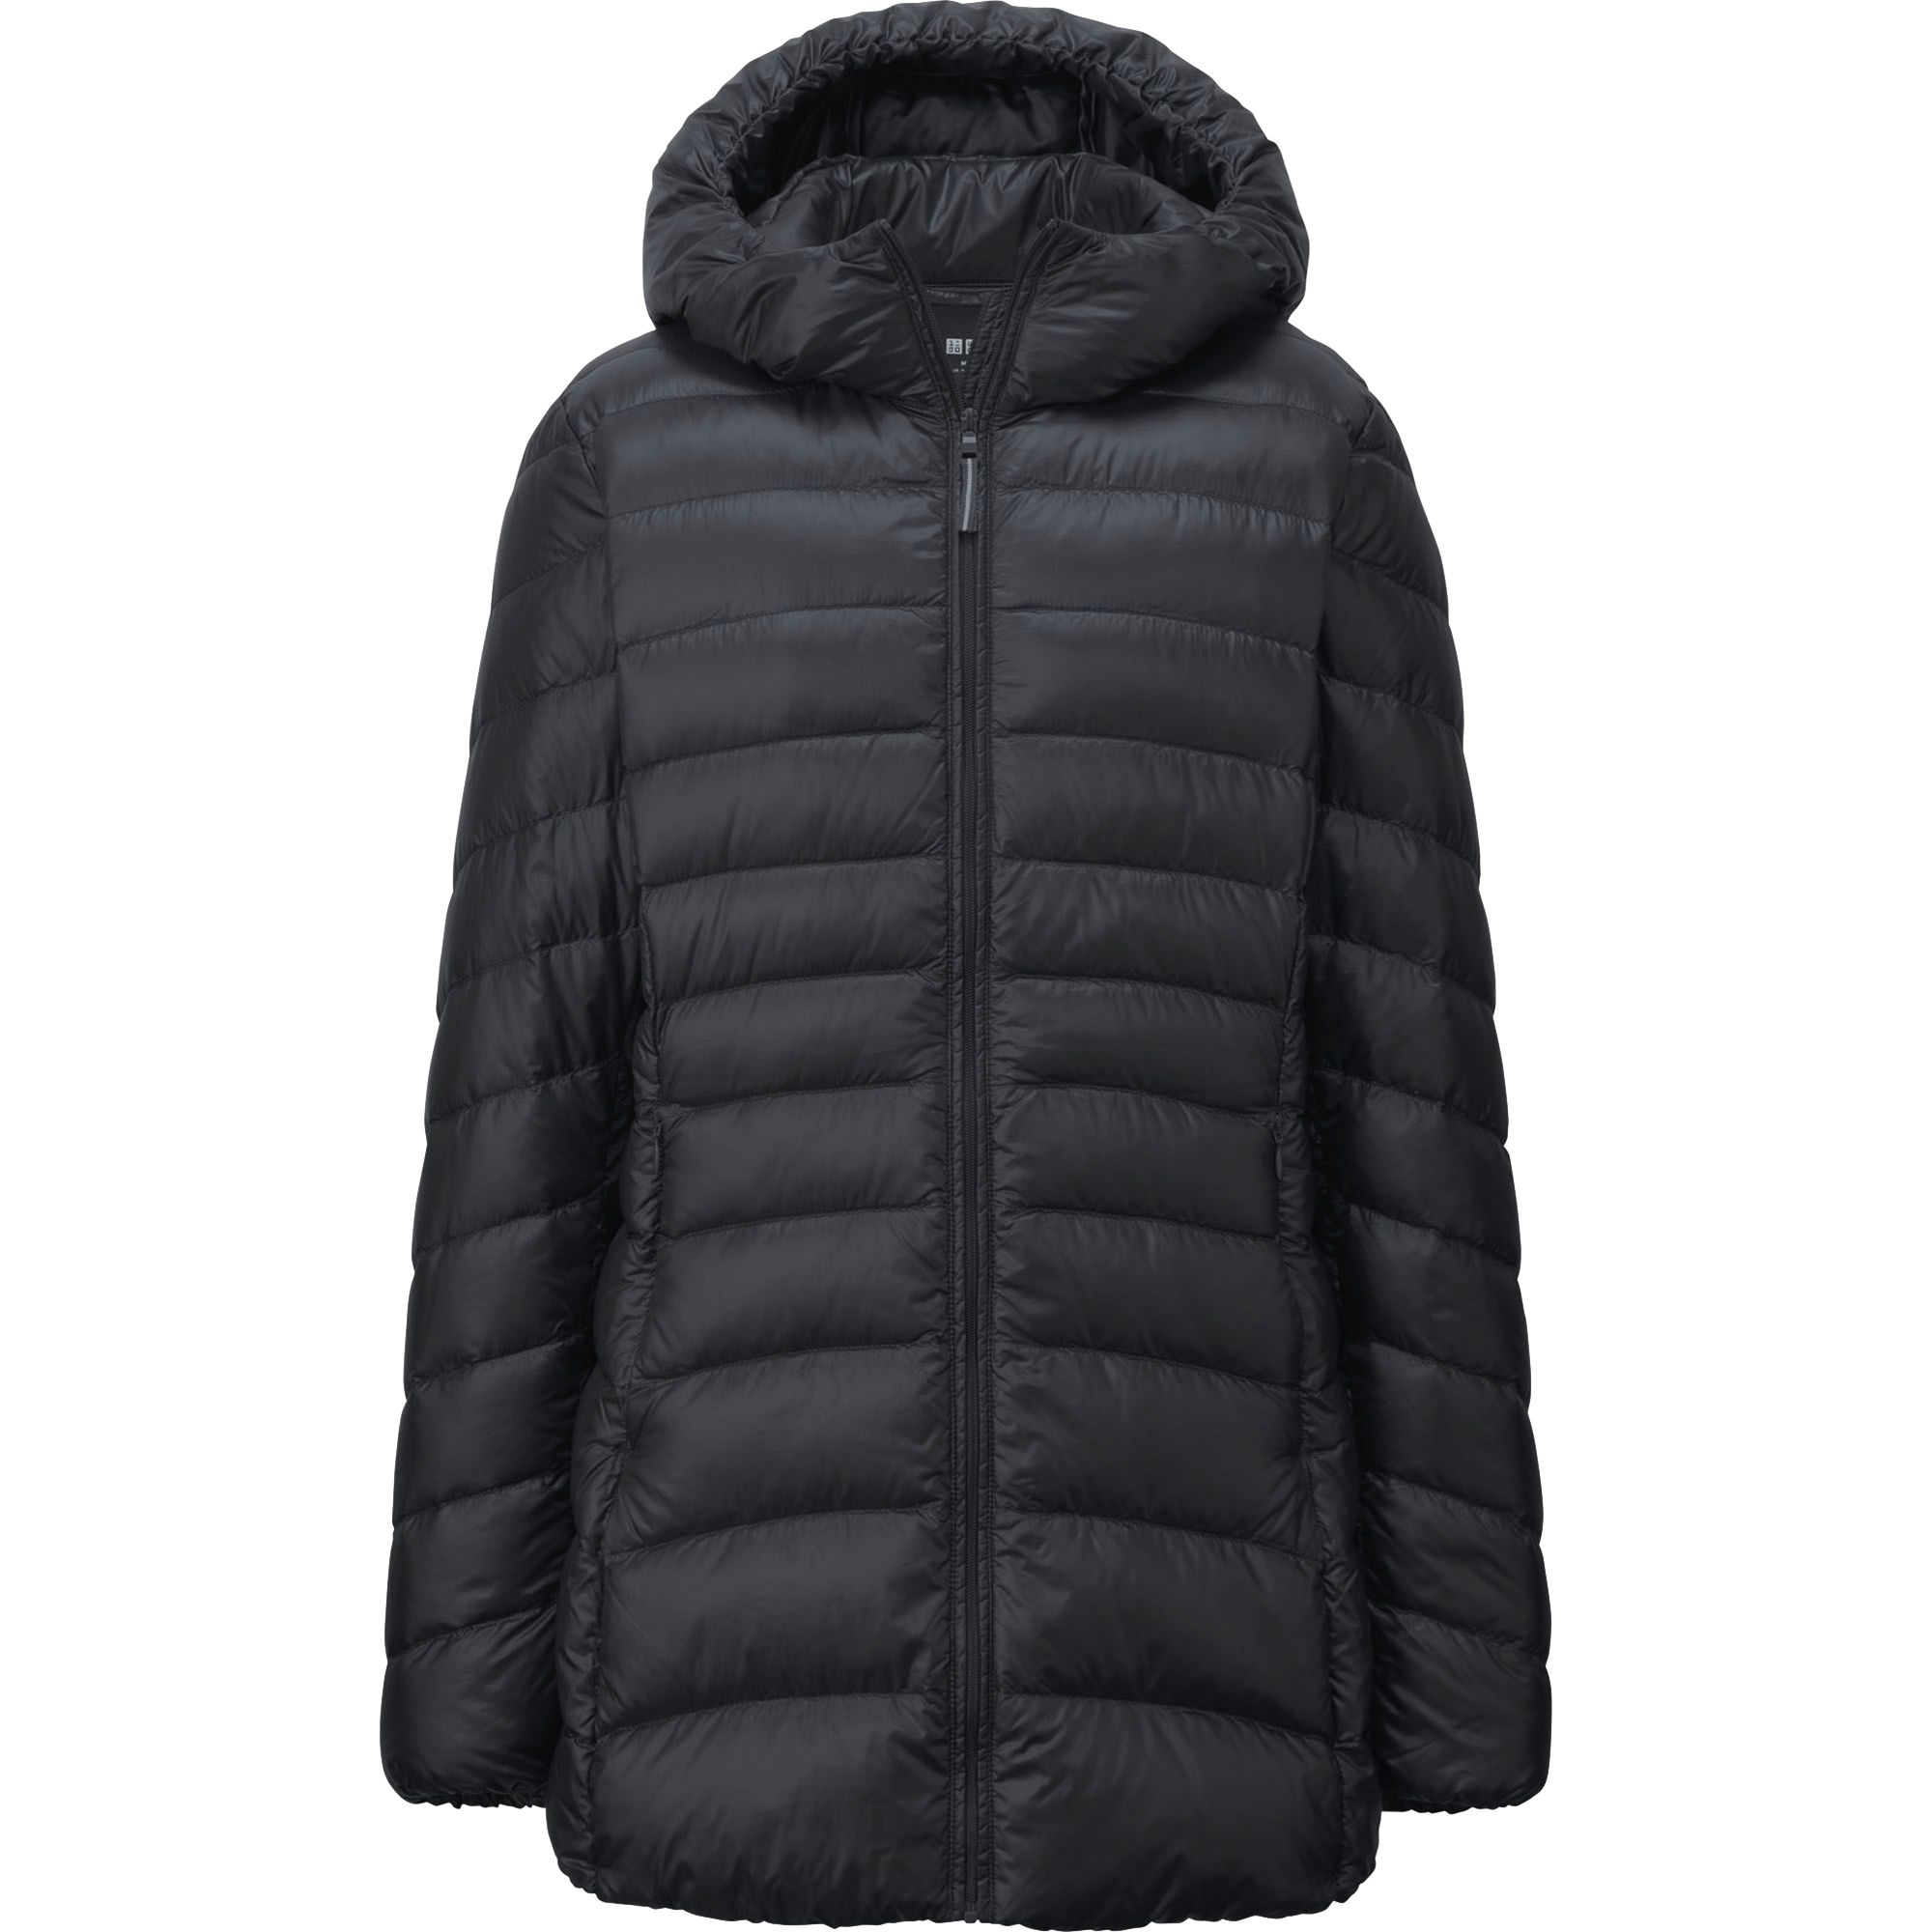 Uniqlo Ultra Light Down Short Coat The Water Defender In